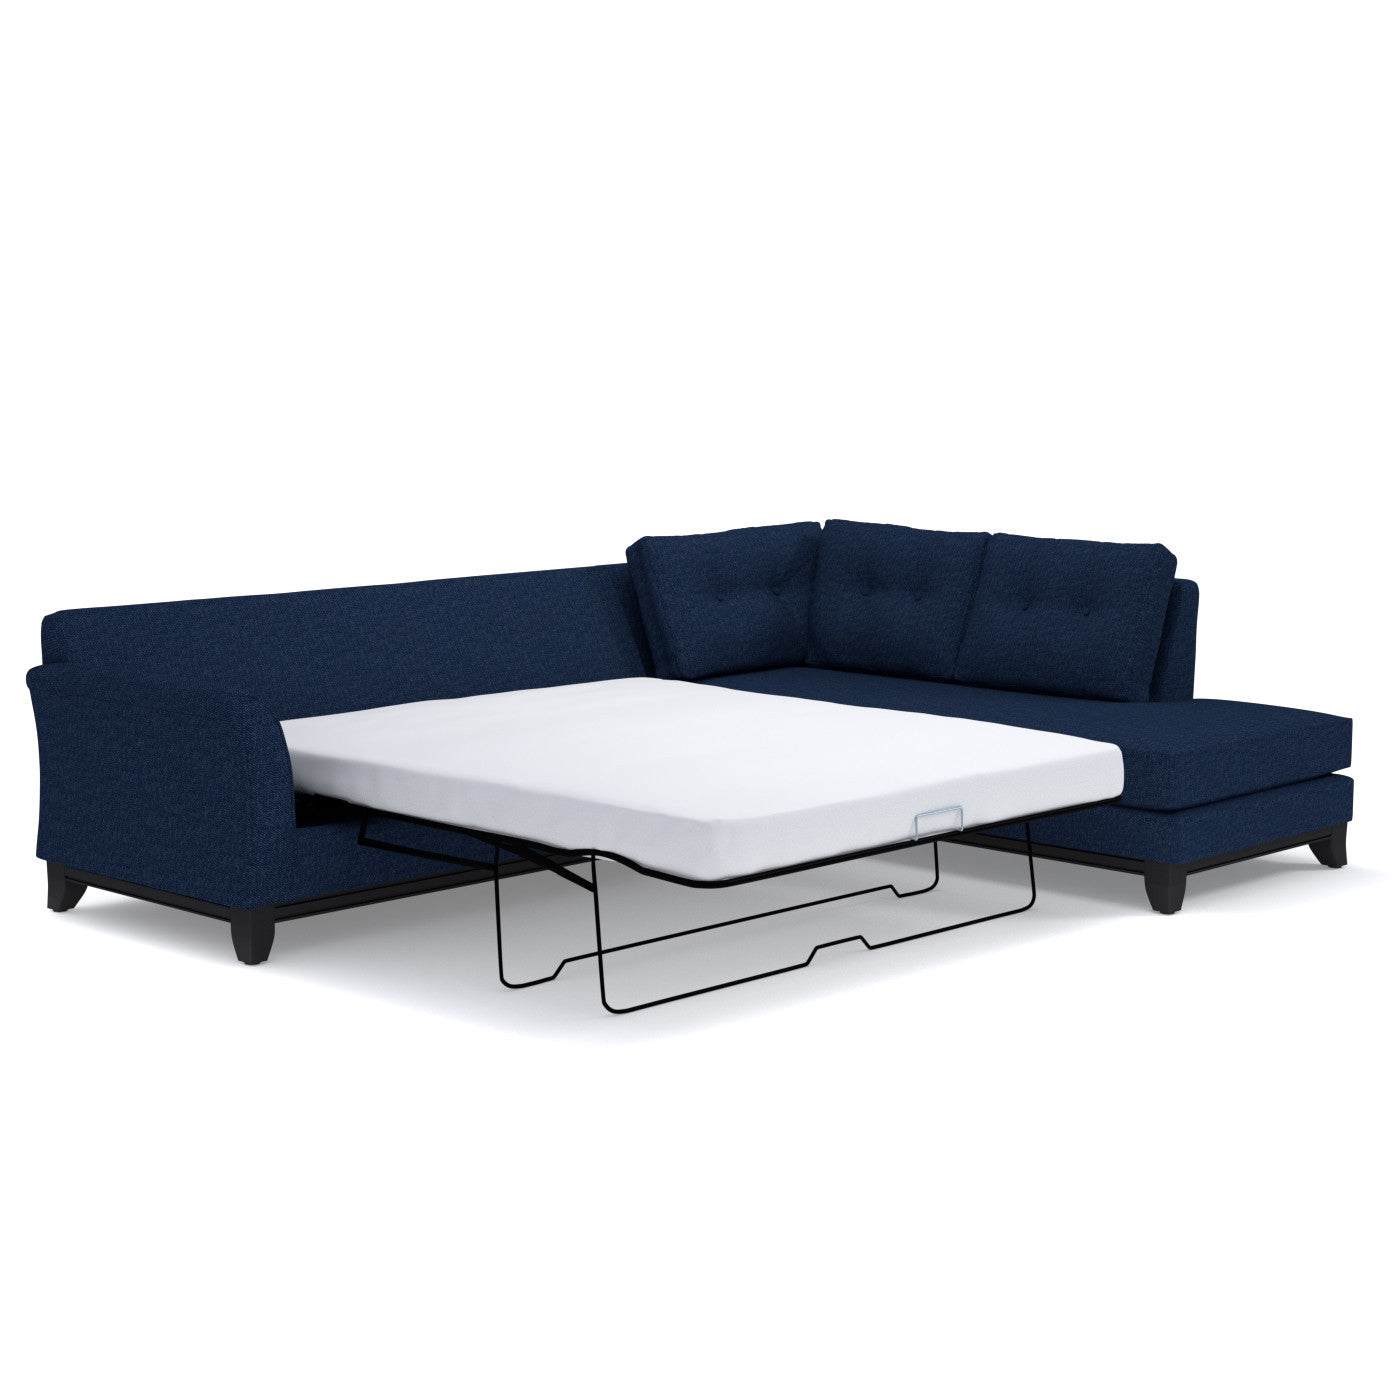 Marco 2pc Sleeper Sectional